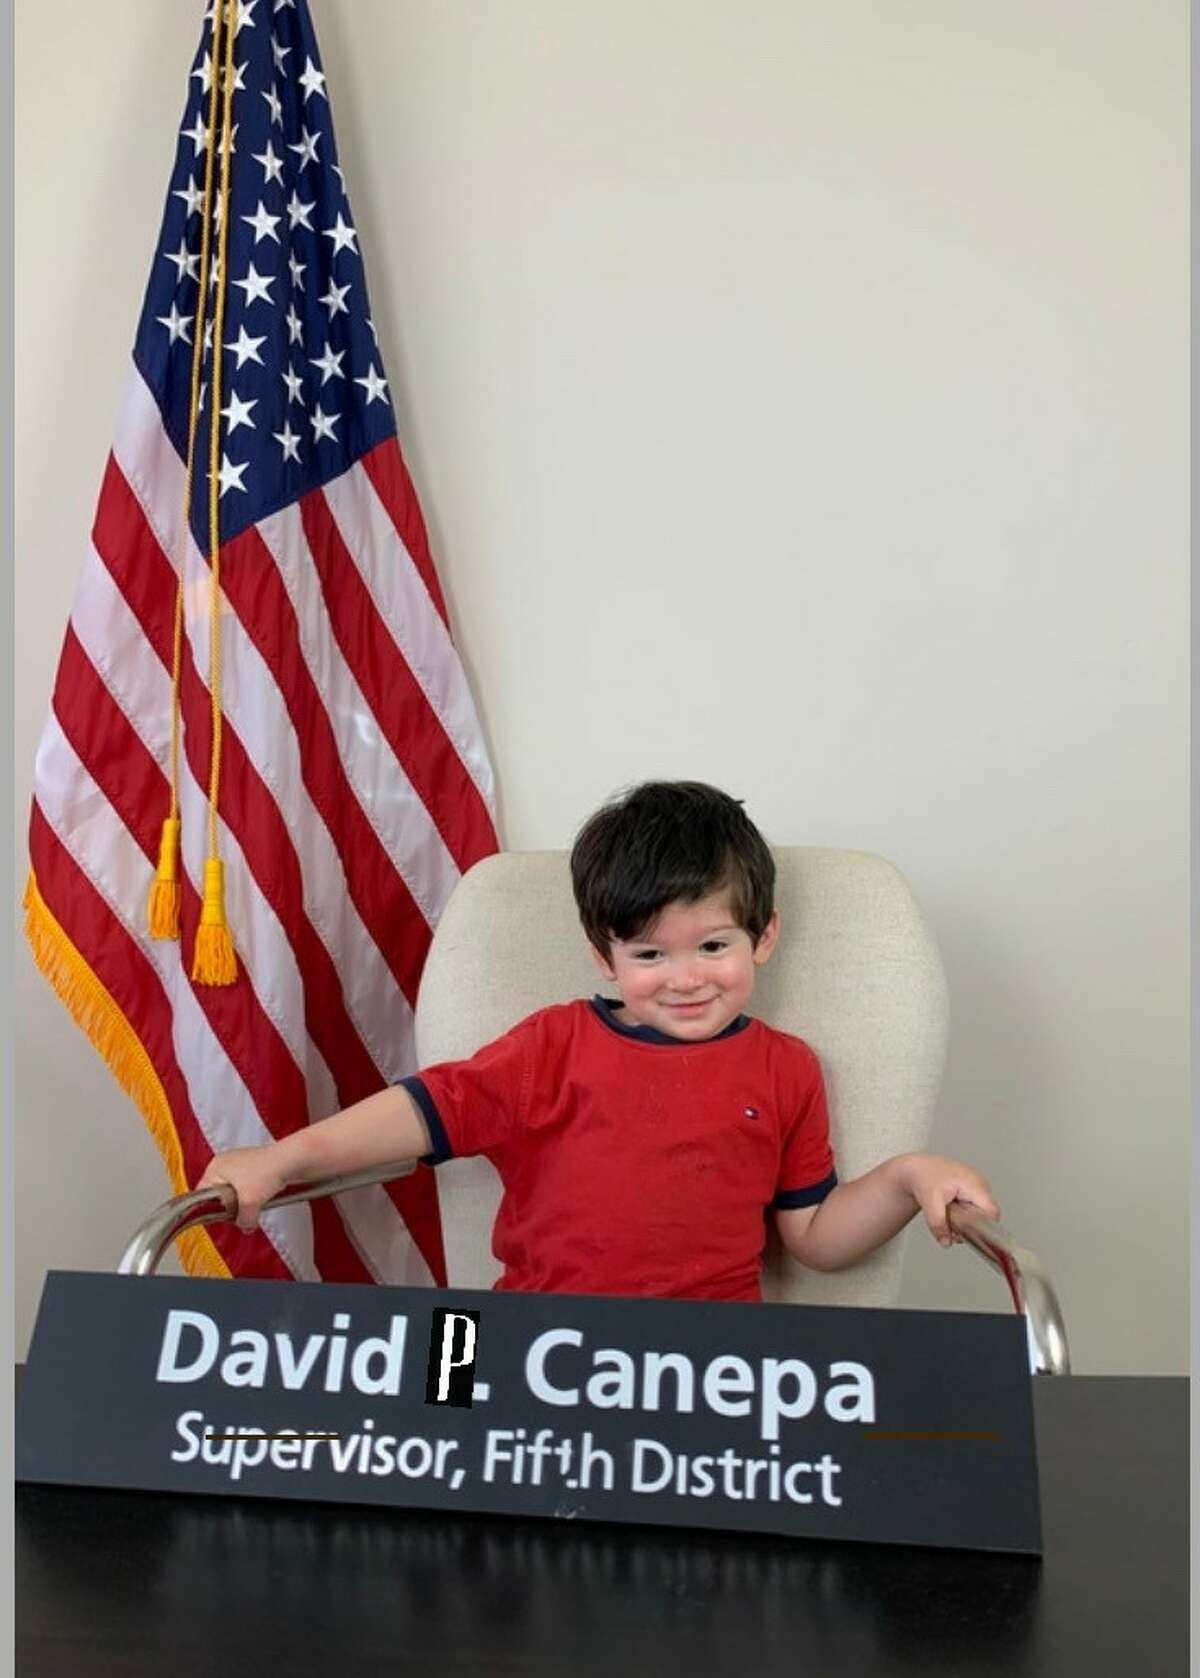 Photo from reader (and San Mateo District 5 Supervisor) David J. Canepa deputizing his son from home.